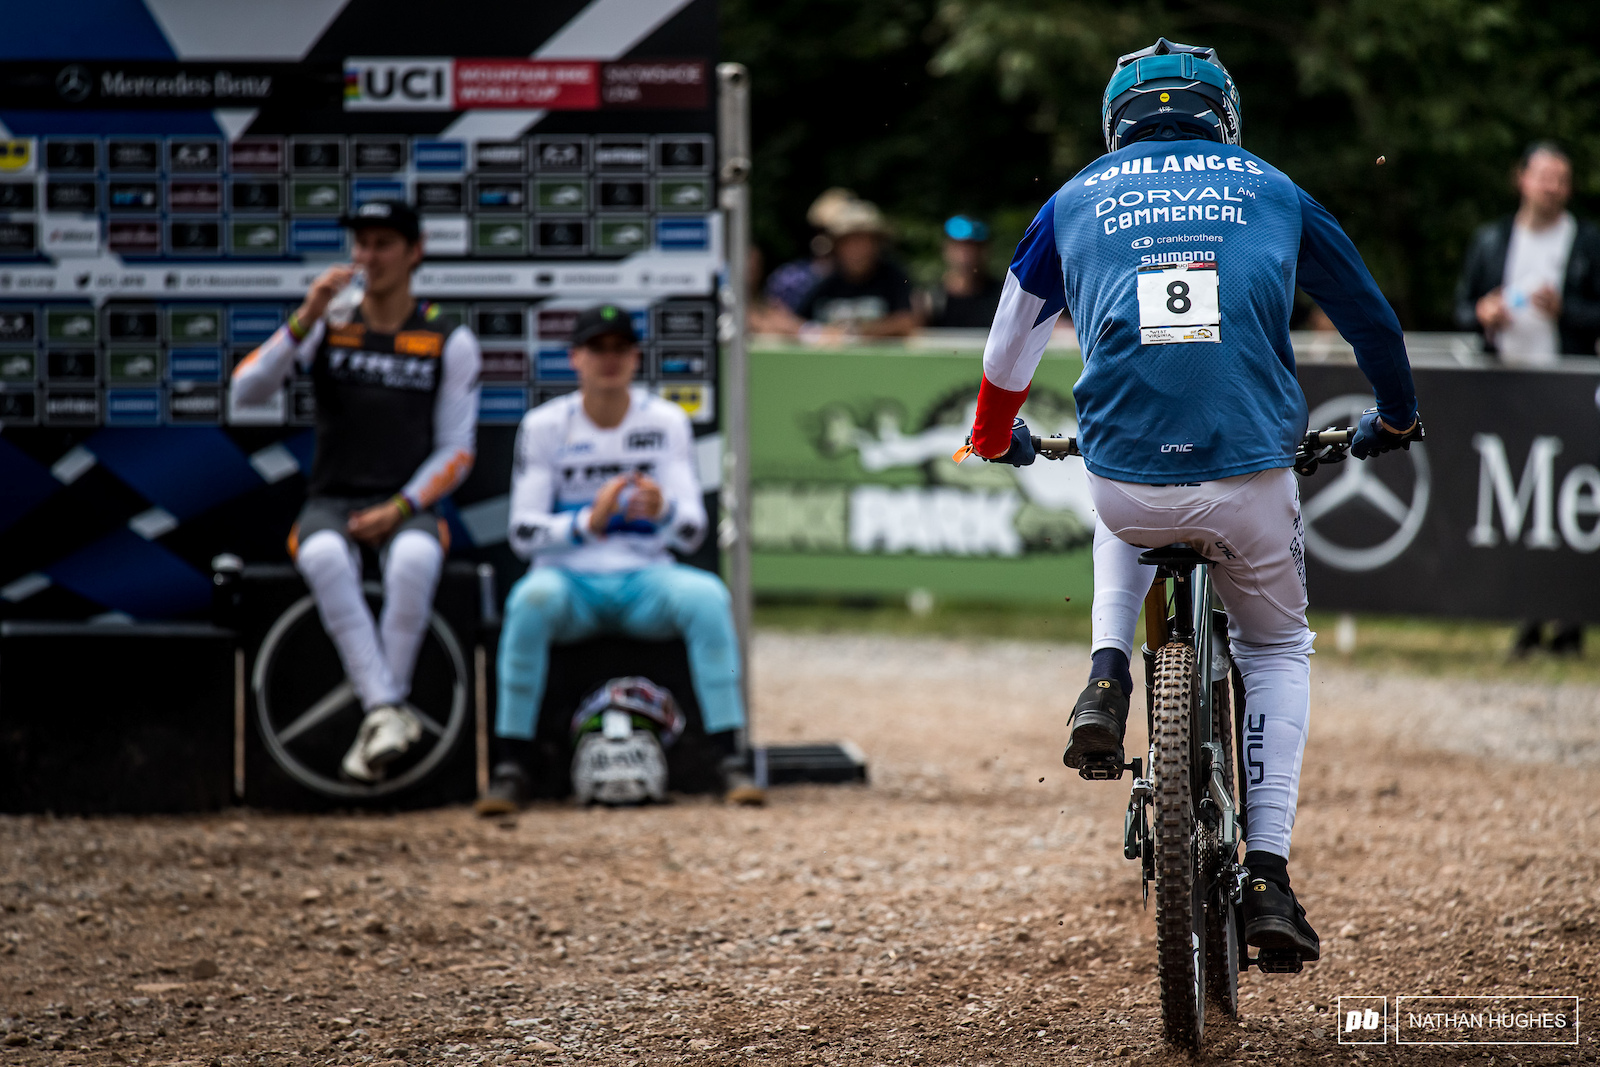 It s not over yet here in West Virginia for the French champ chasing his first win.